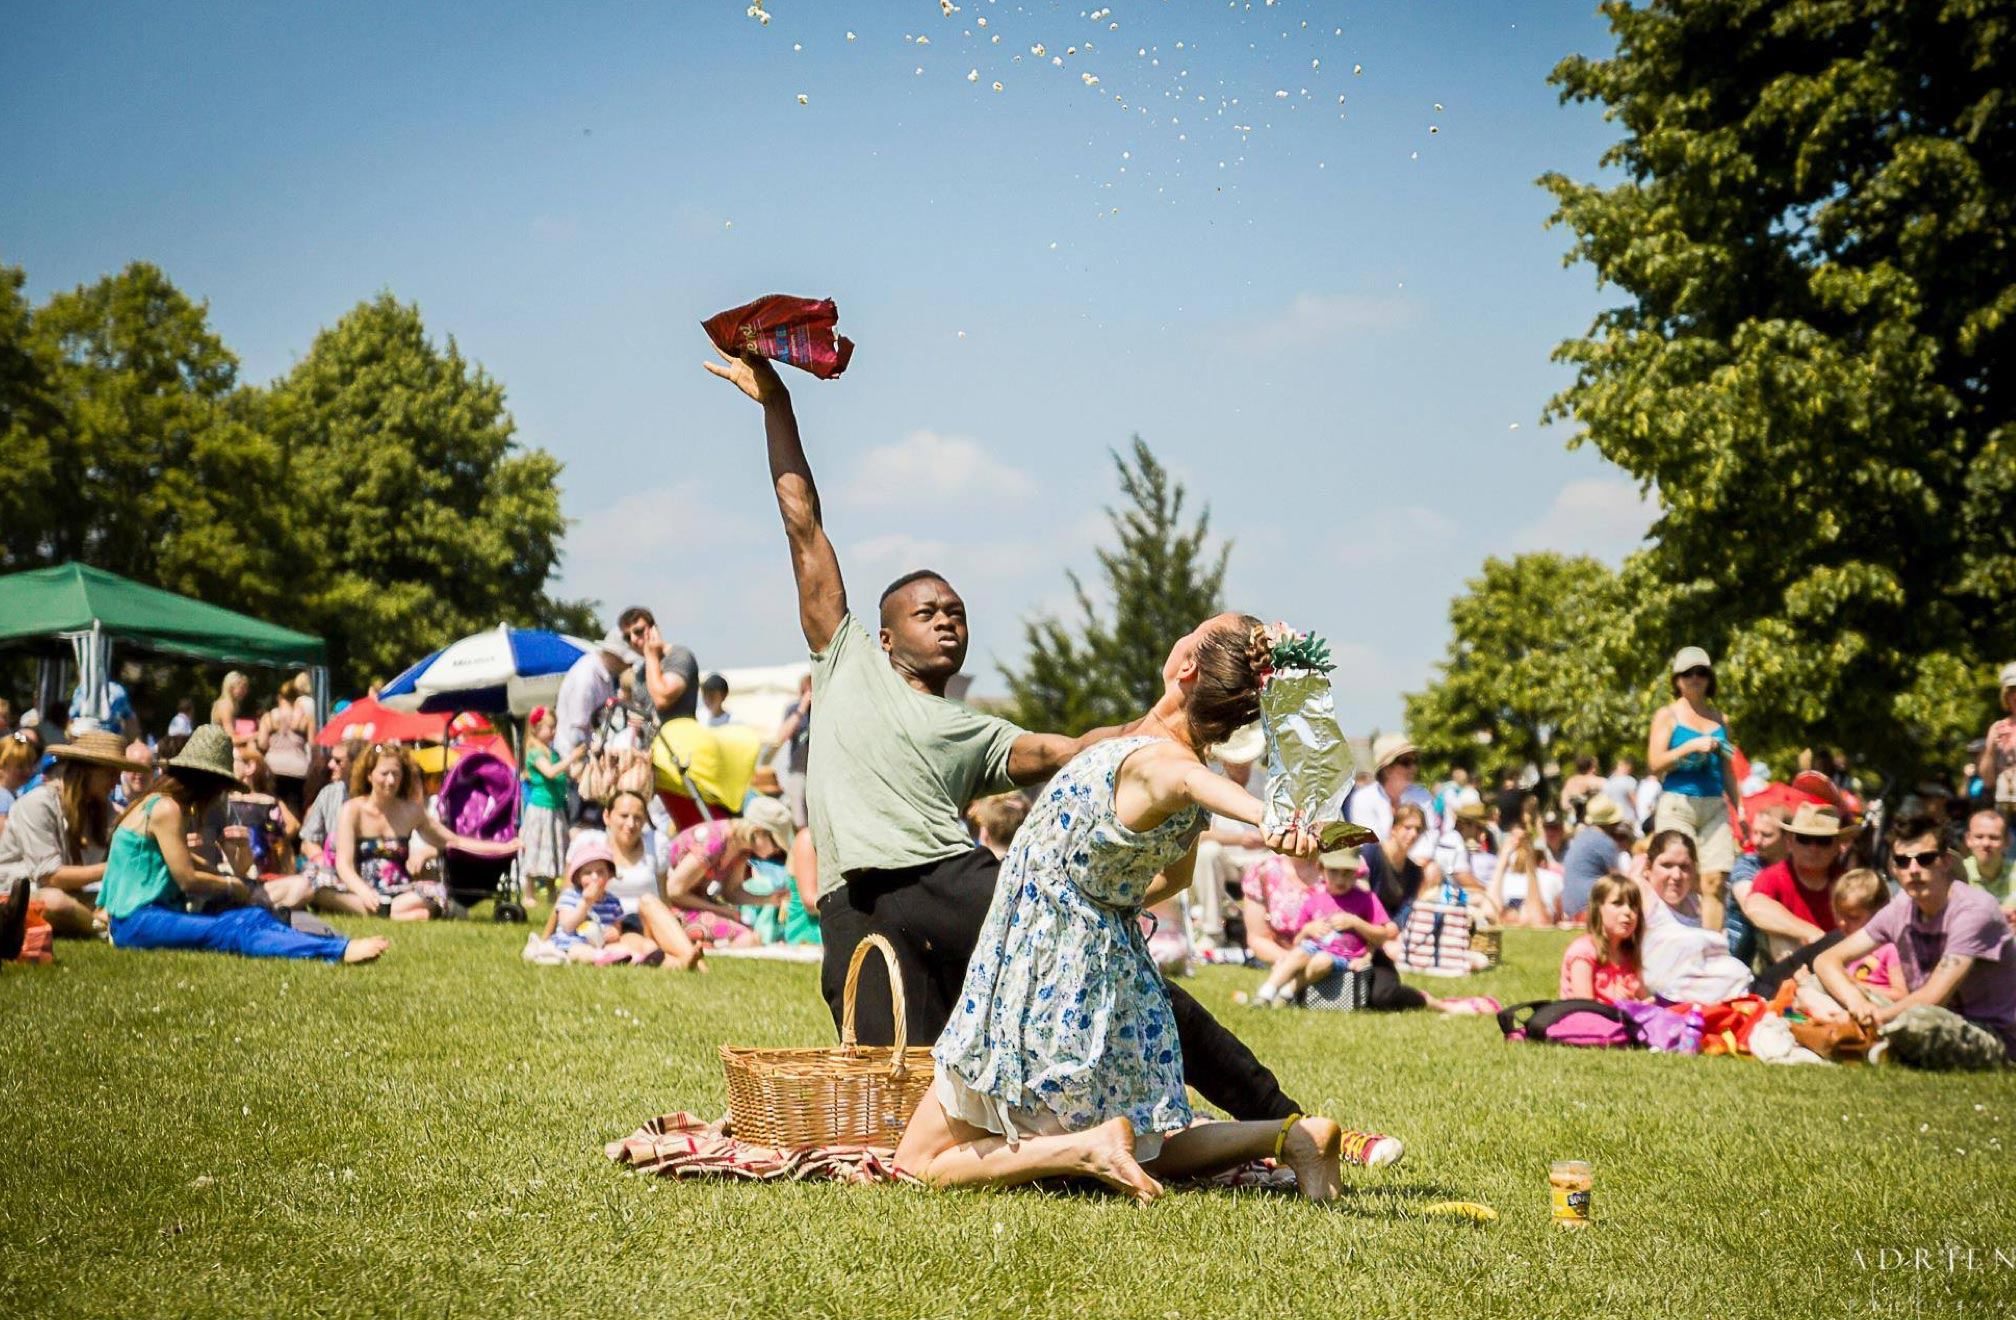 Two performers dancing at a picnic